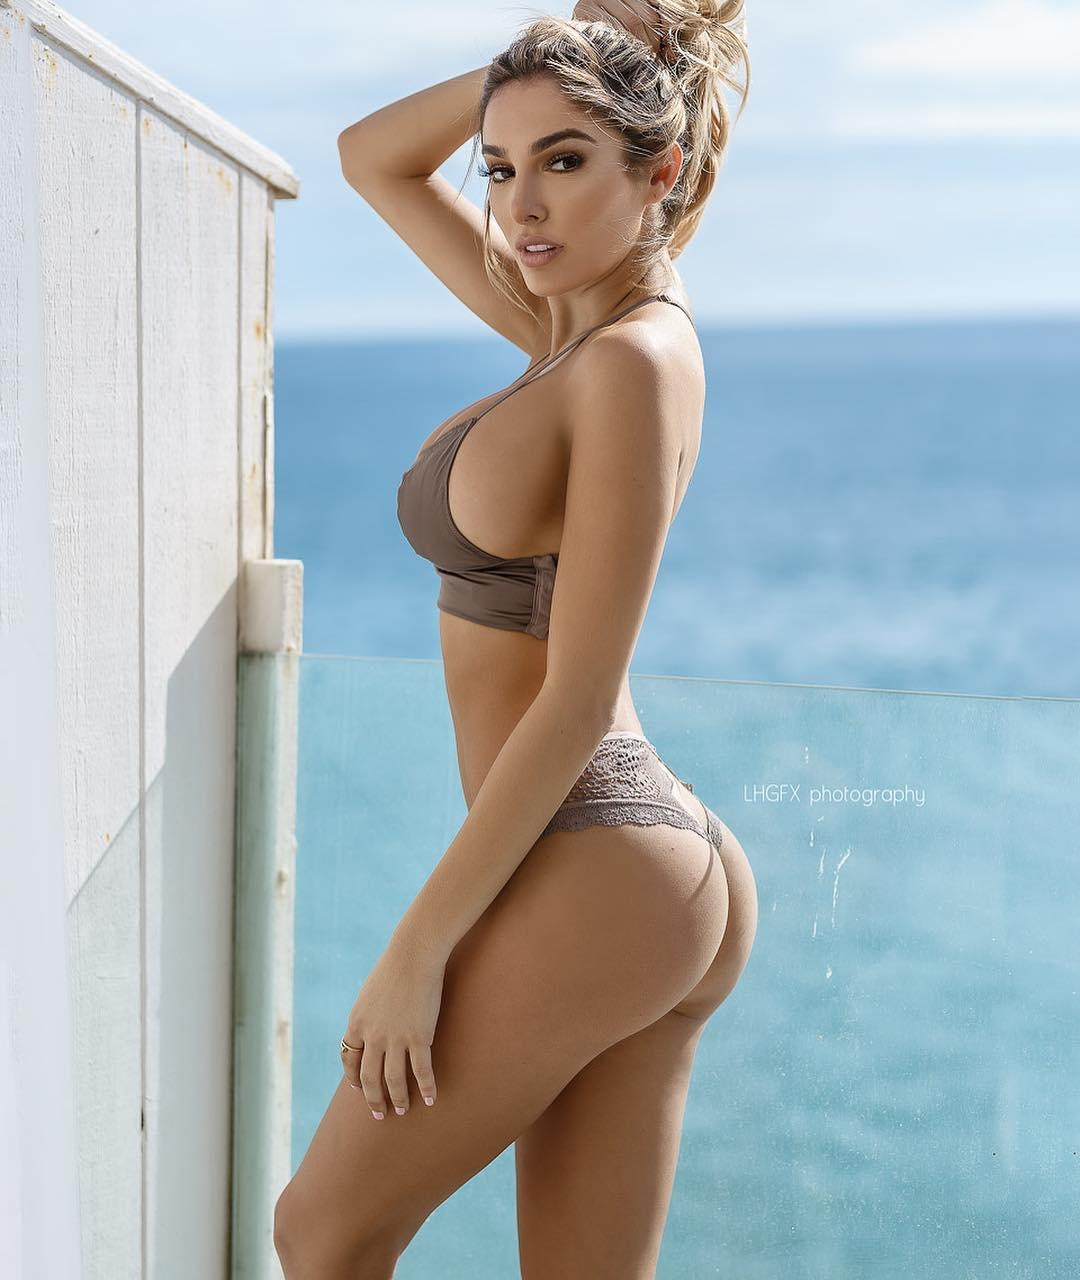 Lyna Perez Big Boobs Sexy Picture and Photo